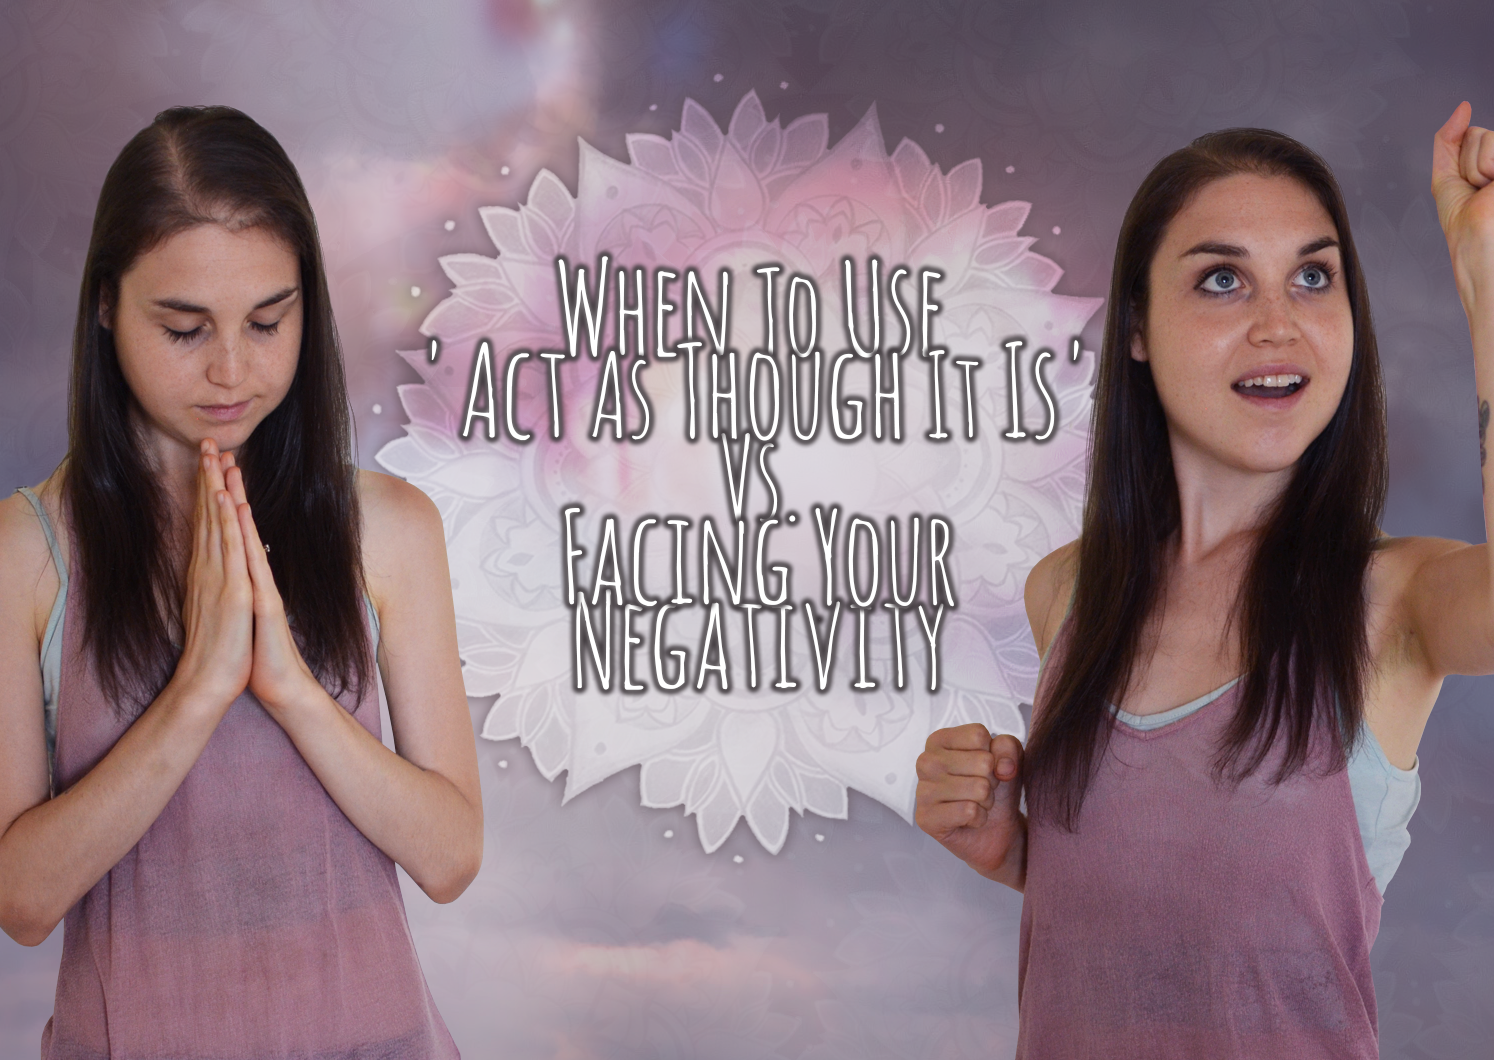 "When To Use ""Act As Thought It Is"" V.S Facing Negative Thoughts/Emotions."